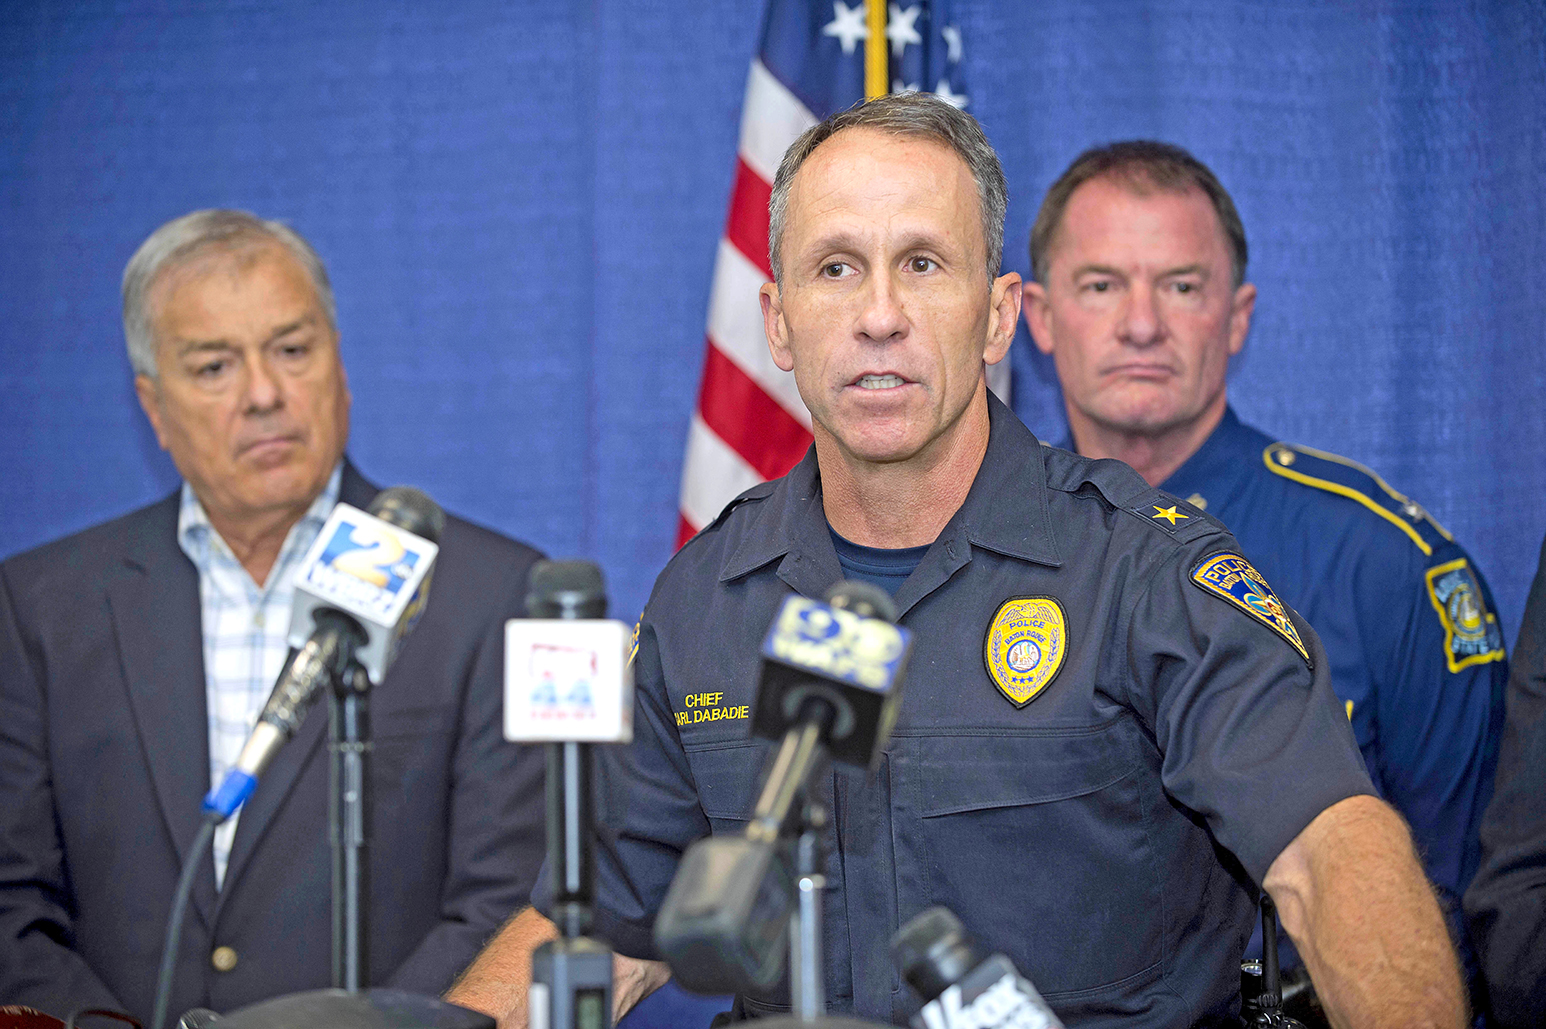 Baton Rouge police chief announces retirement